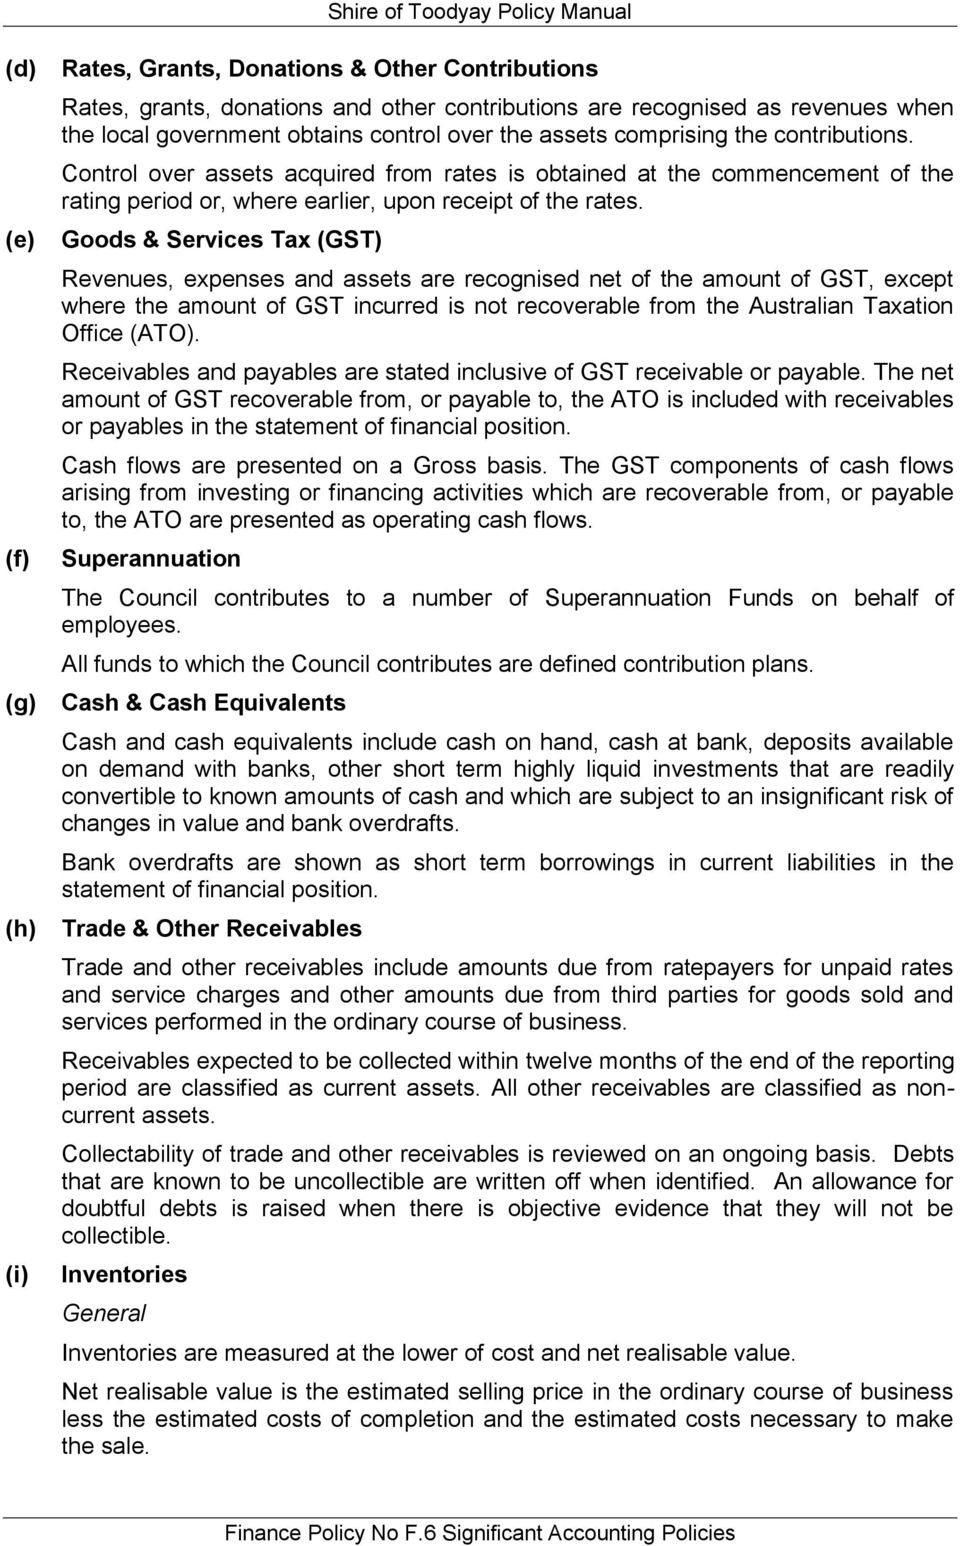 Goods & Services Tax (GST) Revenues, expenses and assets are recognised net of the amount of GST, except where the amount of GST incurred is not recoverable from the Australian Taxation Office (ATO).